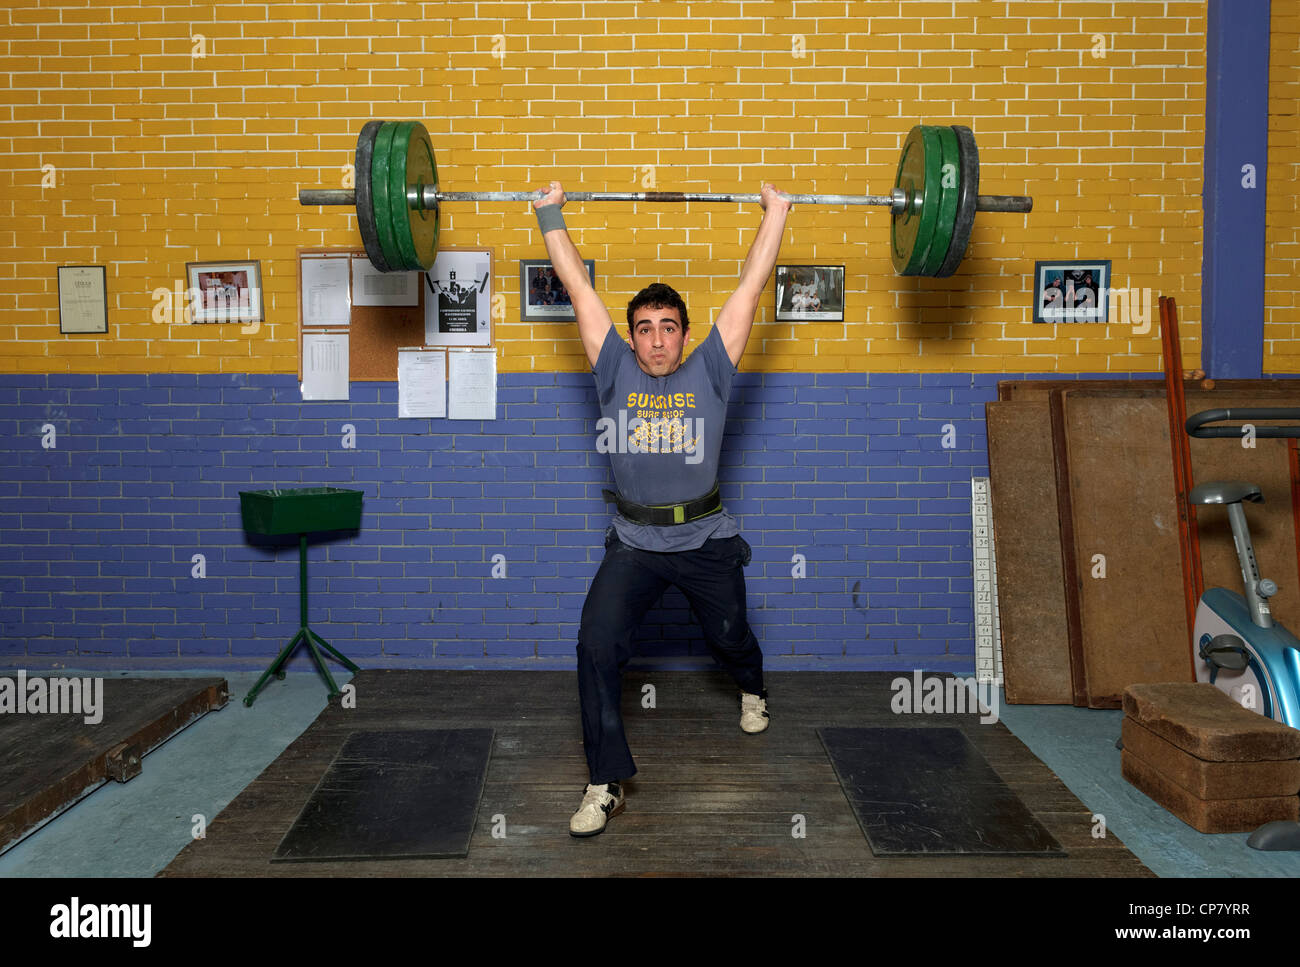 Weightlifting training - Stock Image